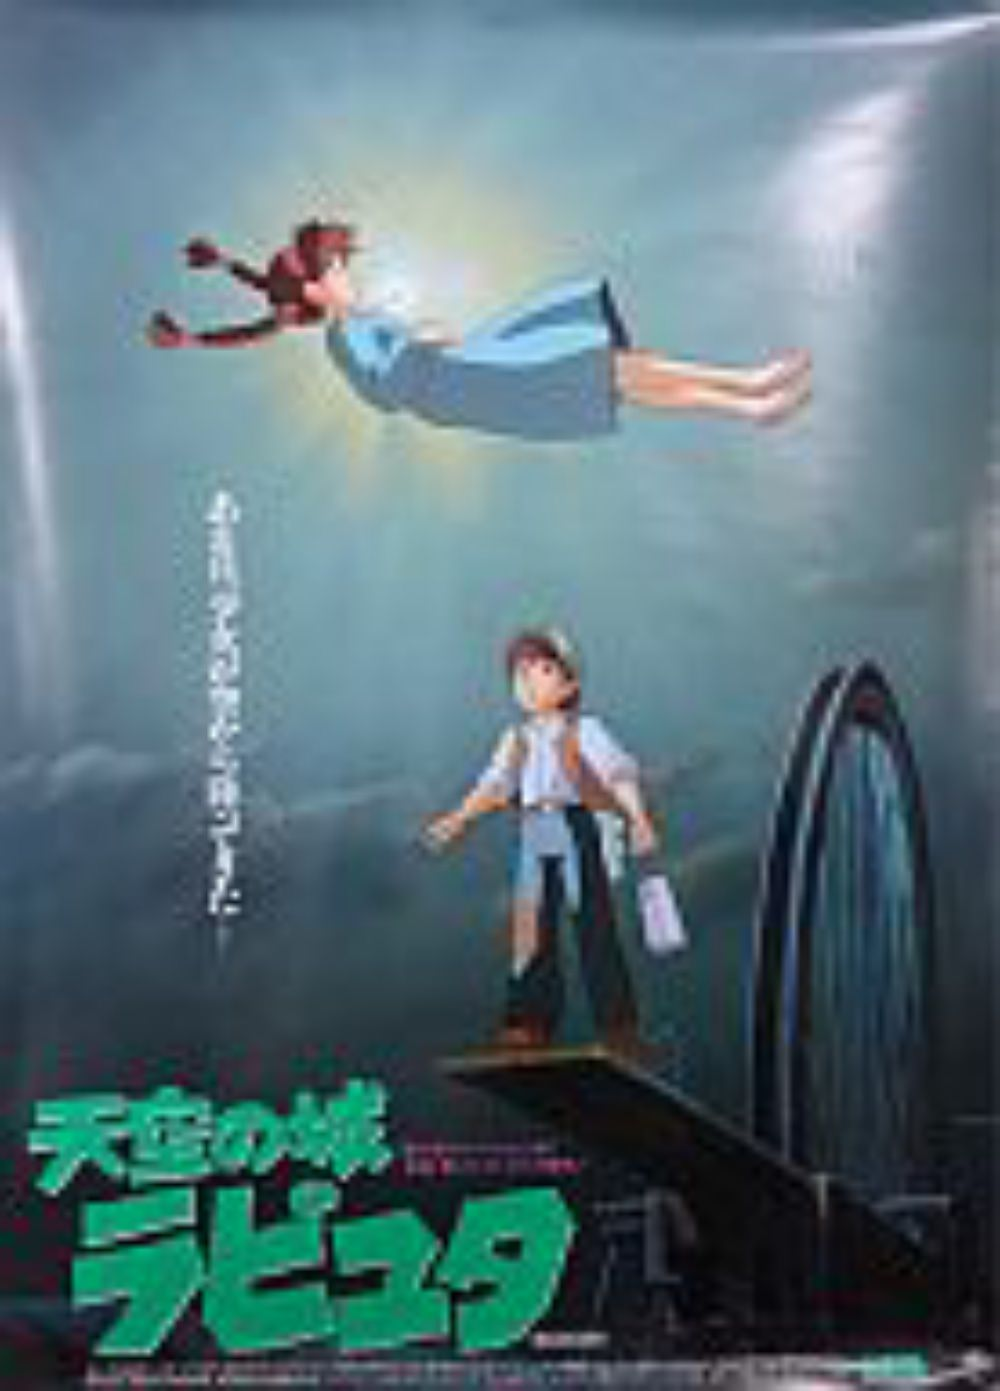 [Image] The difference between Japanese and American sense in movie posters wwwwwwwwww